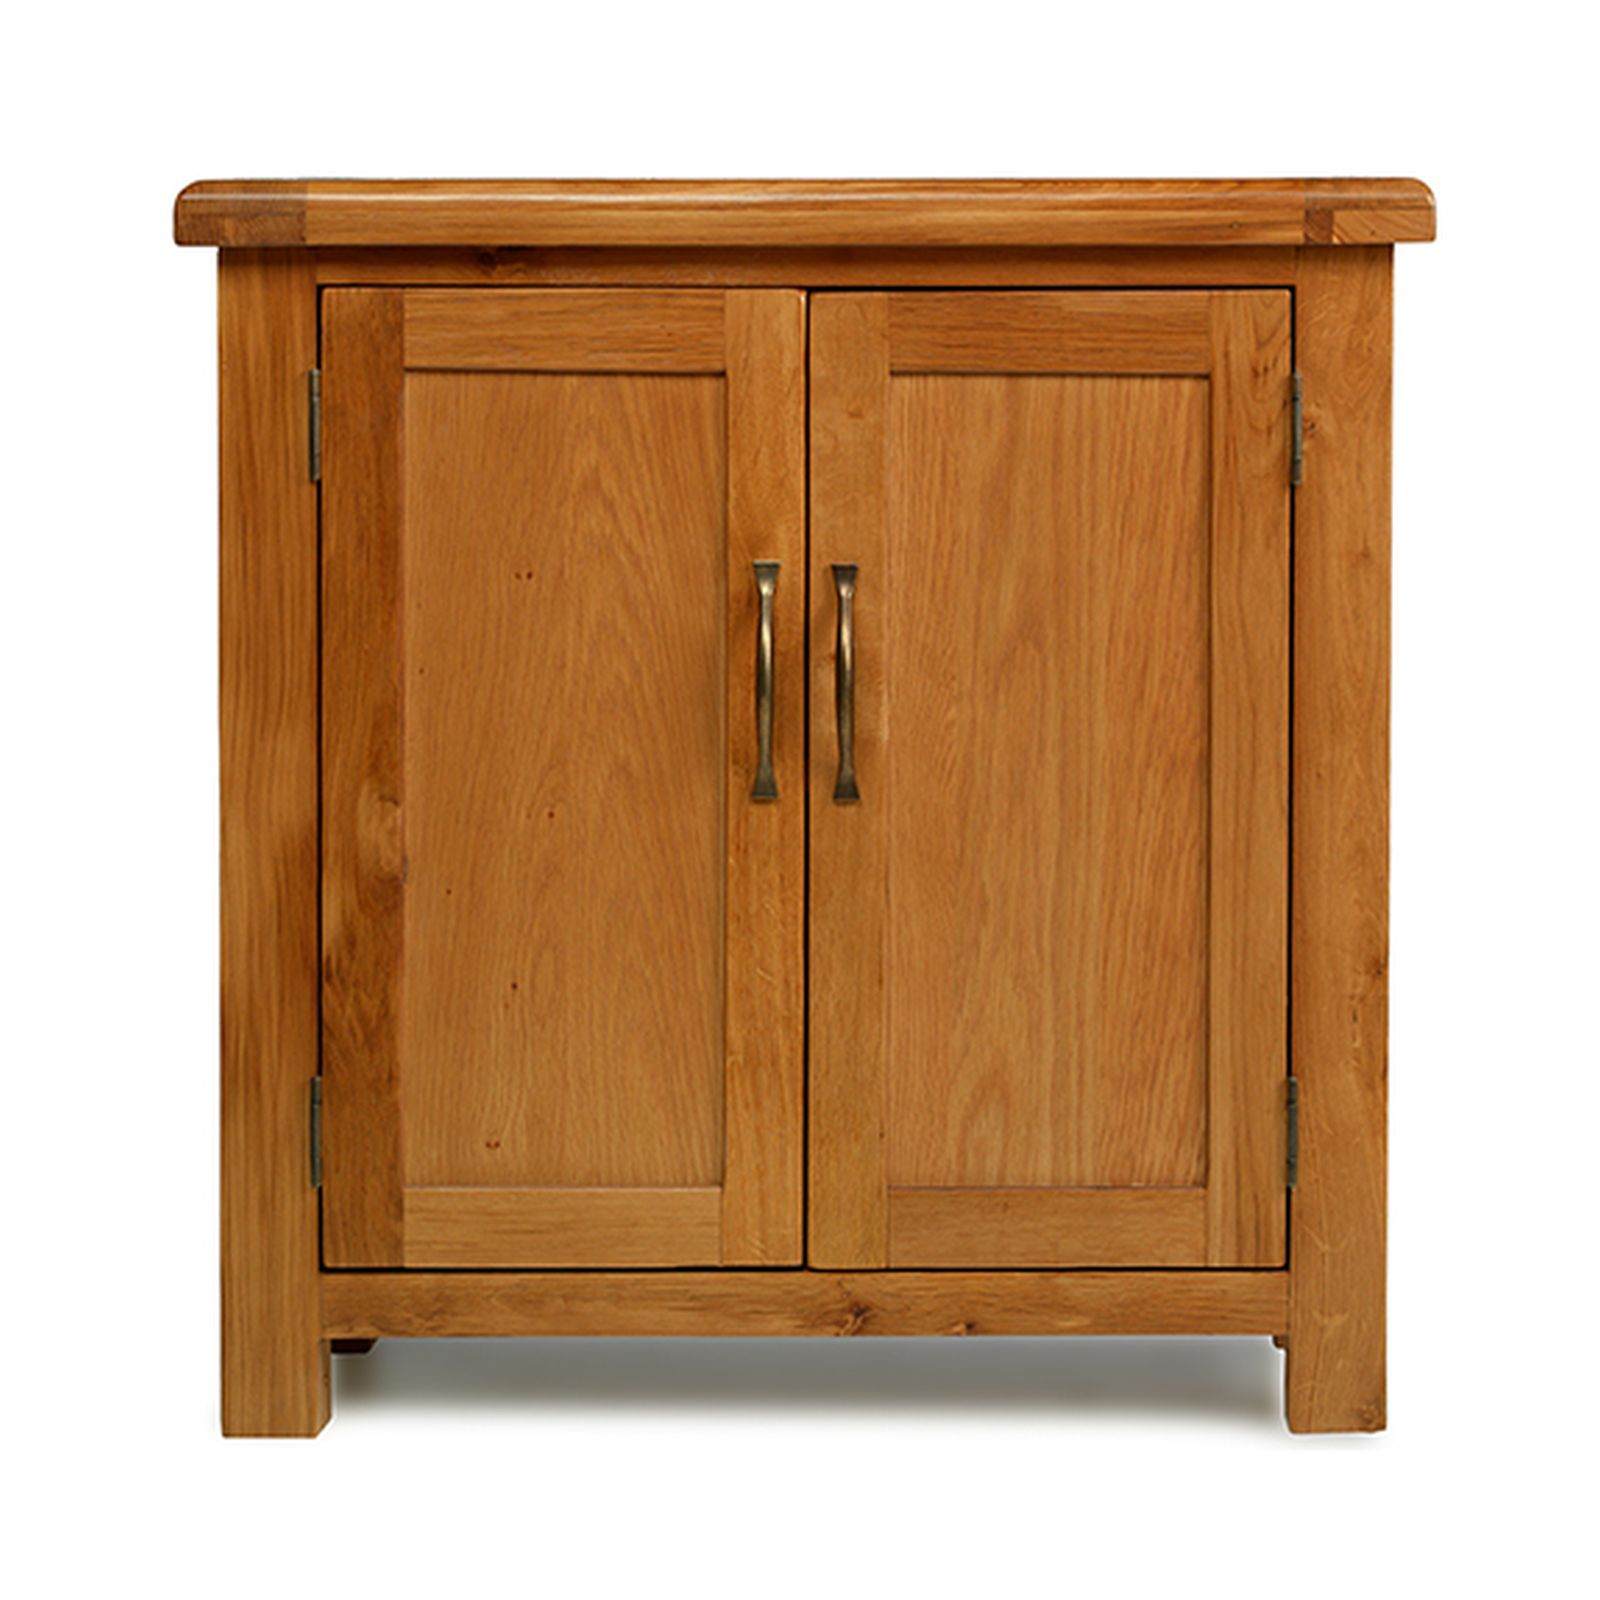 Rushden solid oak furniture small petite cabinet storage for Cupboard cabinet